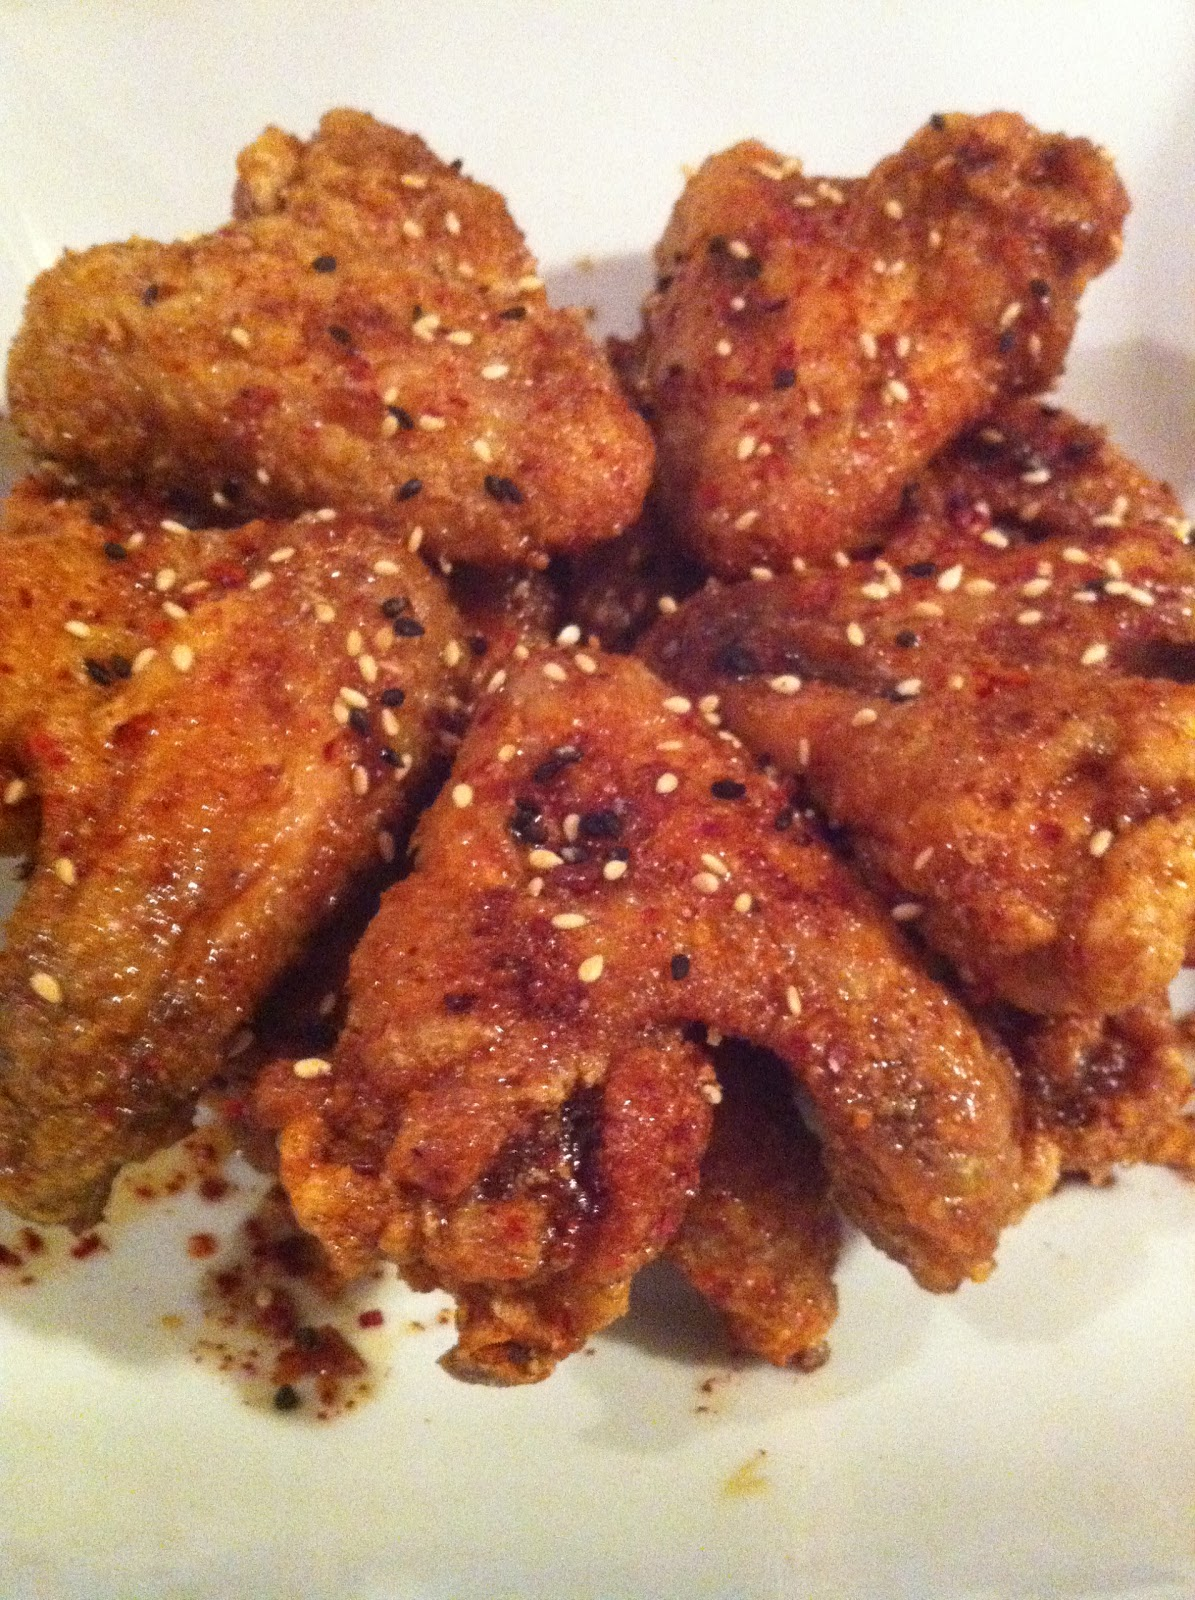 Home-made Cuisine: Japanese style fried chicken wings